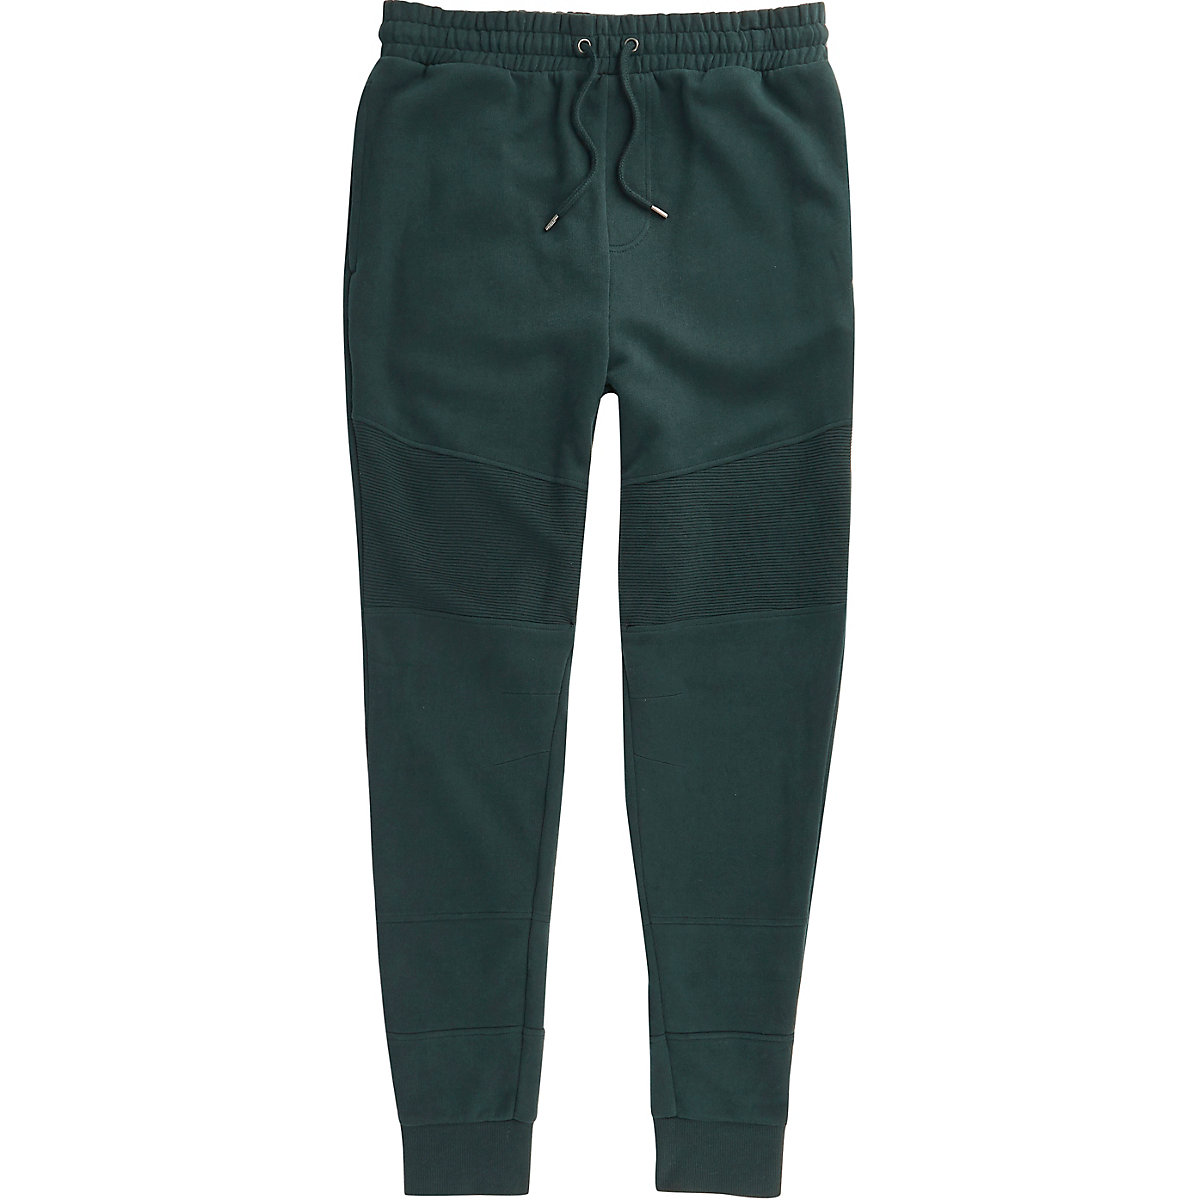 Dark green muscle fit joggers